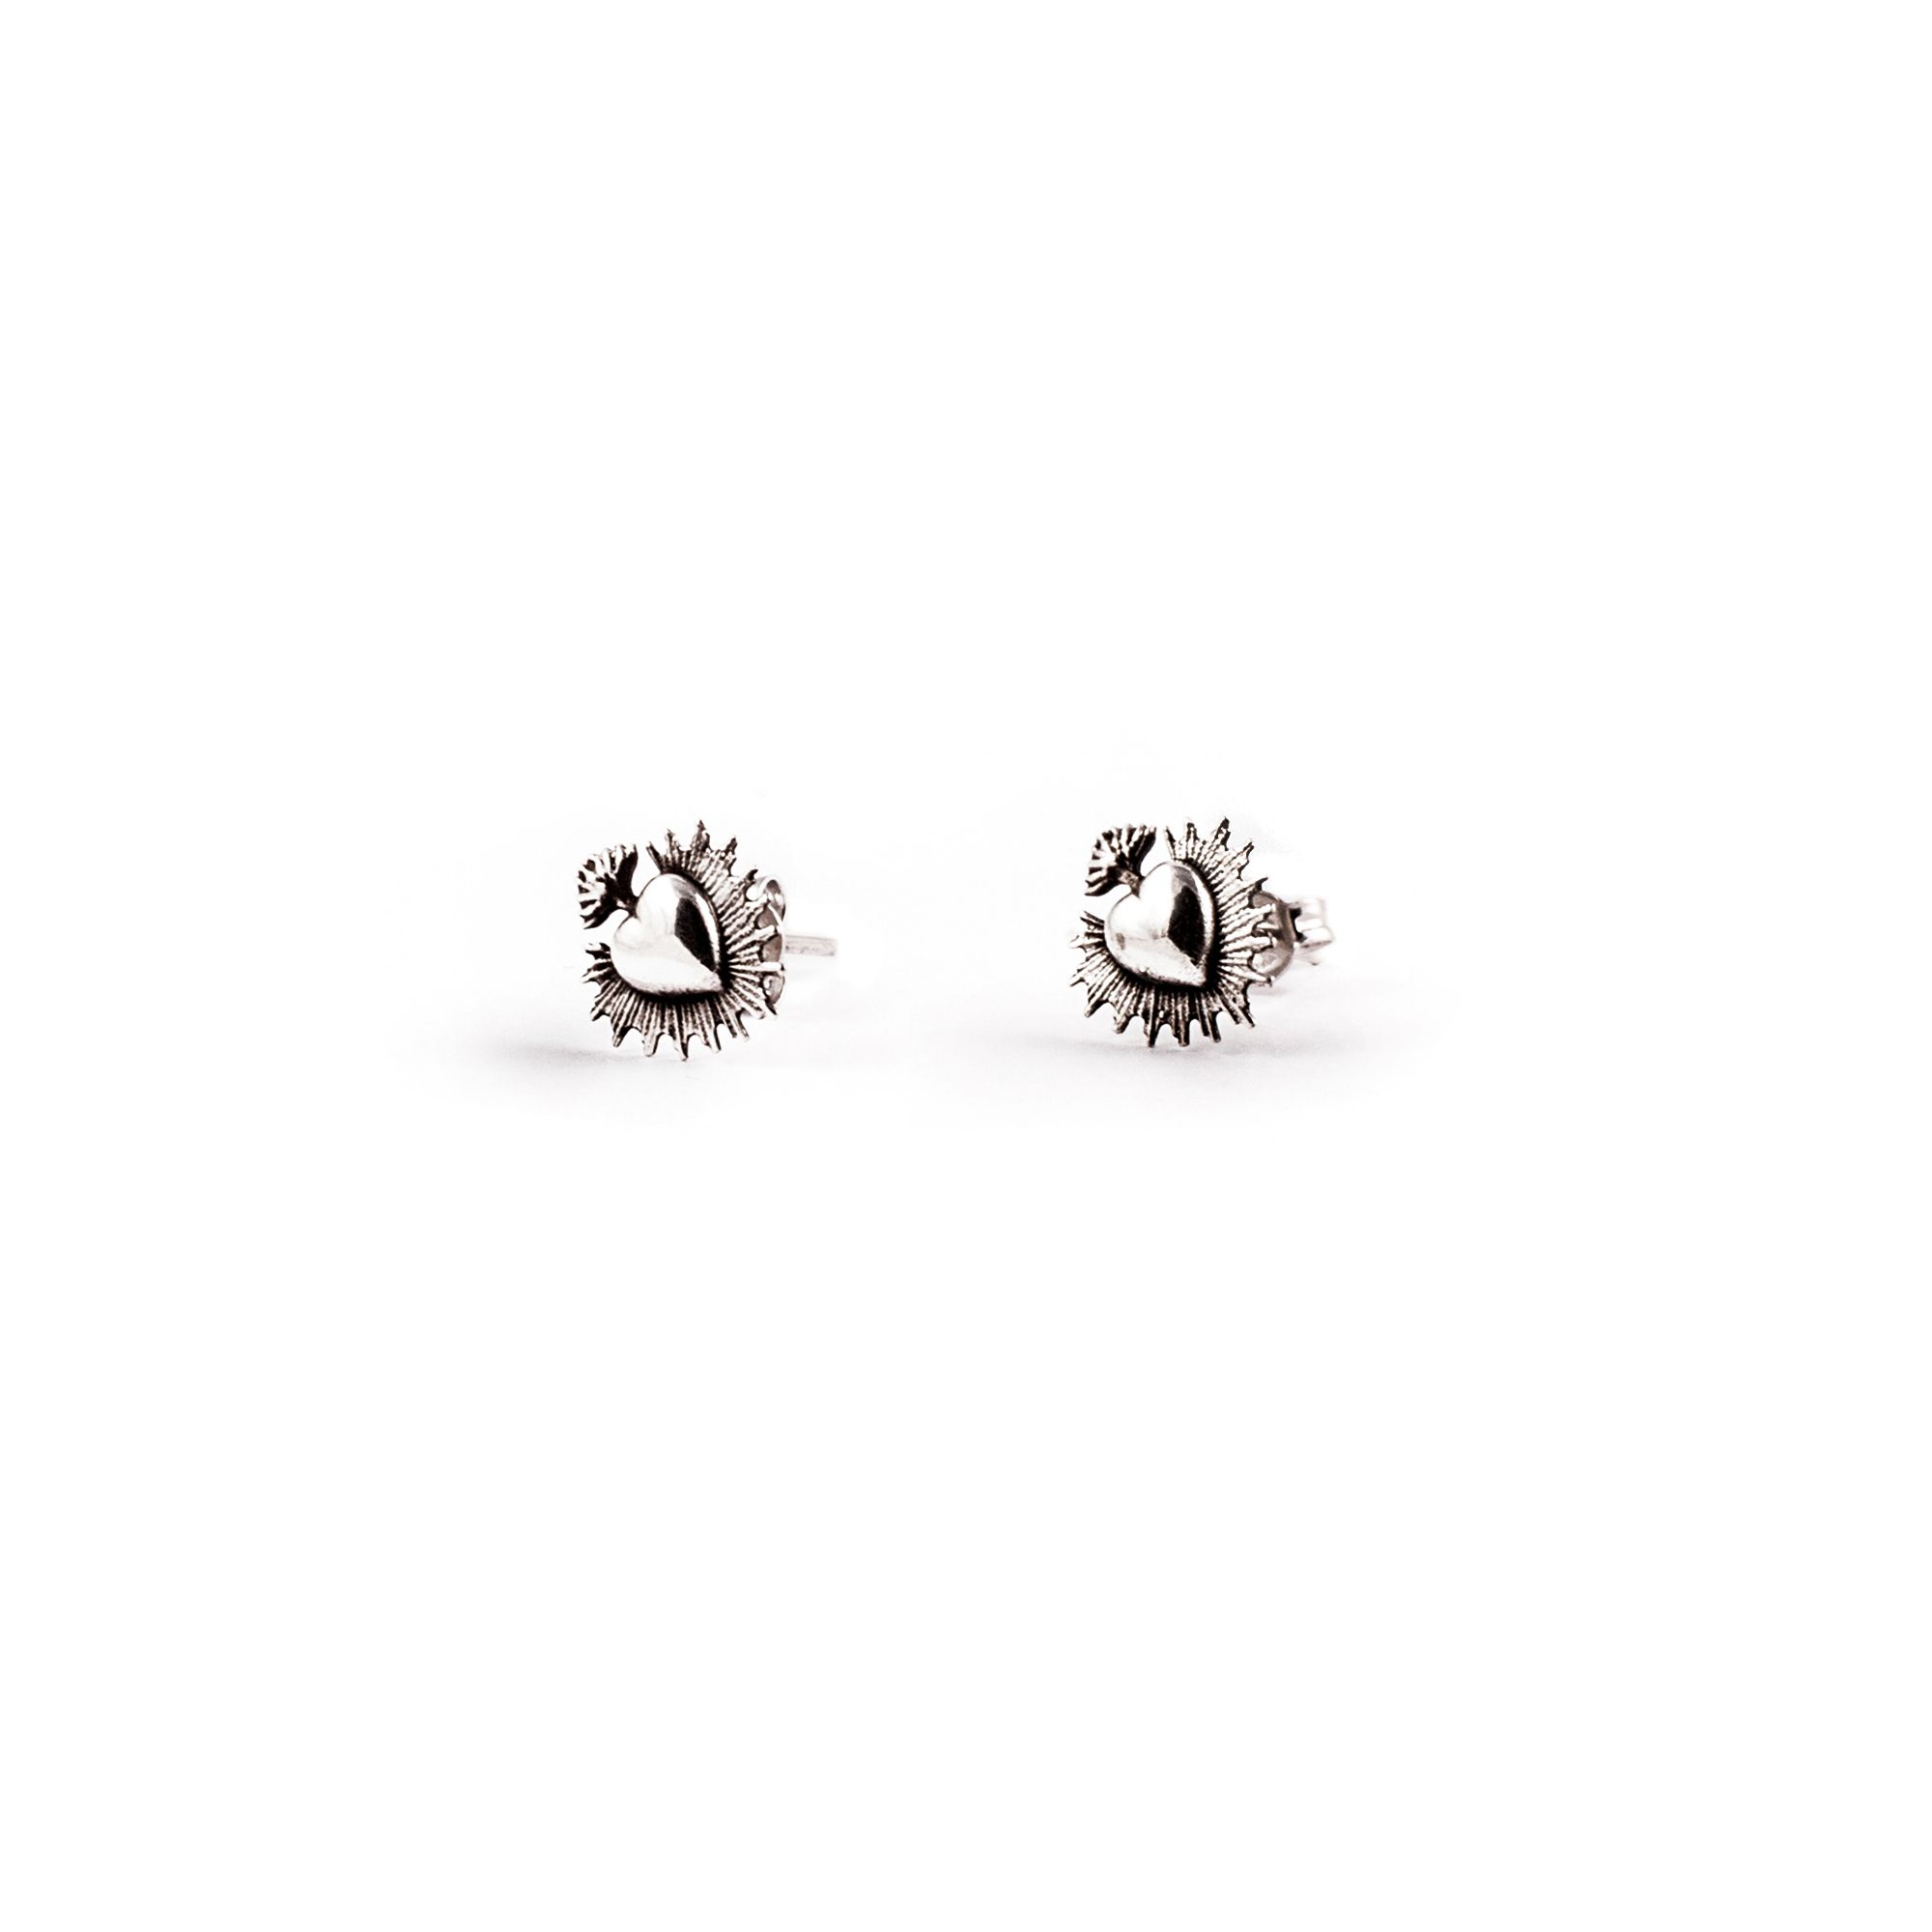 'Sacred Heart' earrings Lobe earrings in silver